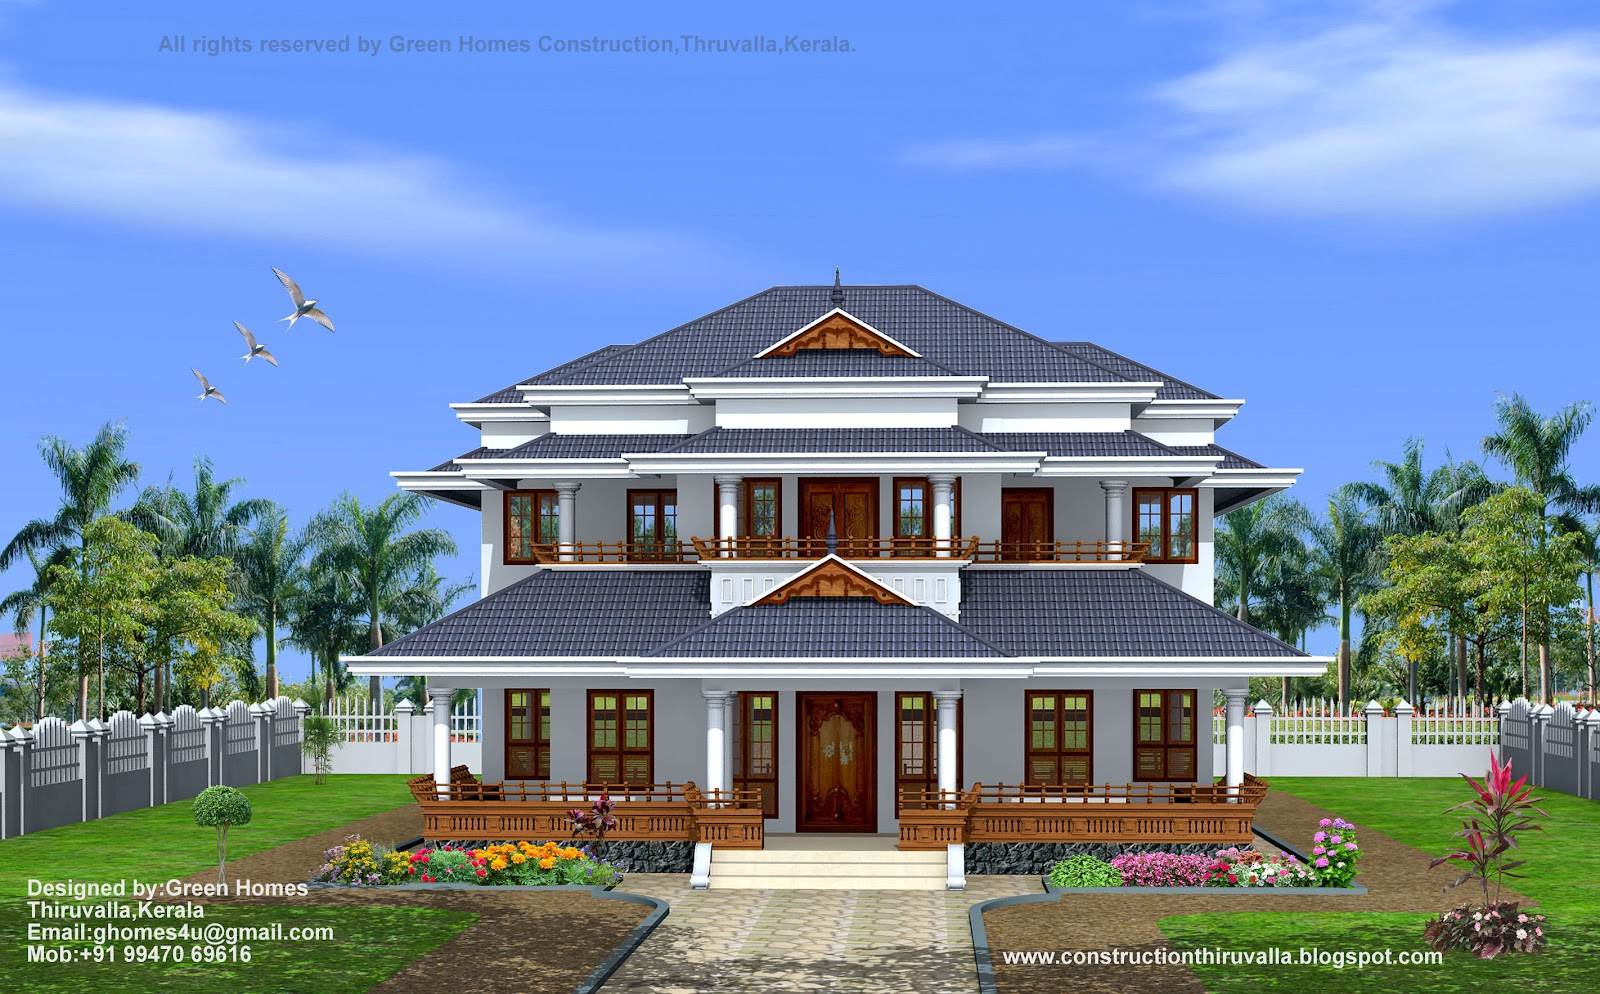 Green homes traditional style kerala home design 3450 sq feet for Green house plans with photos